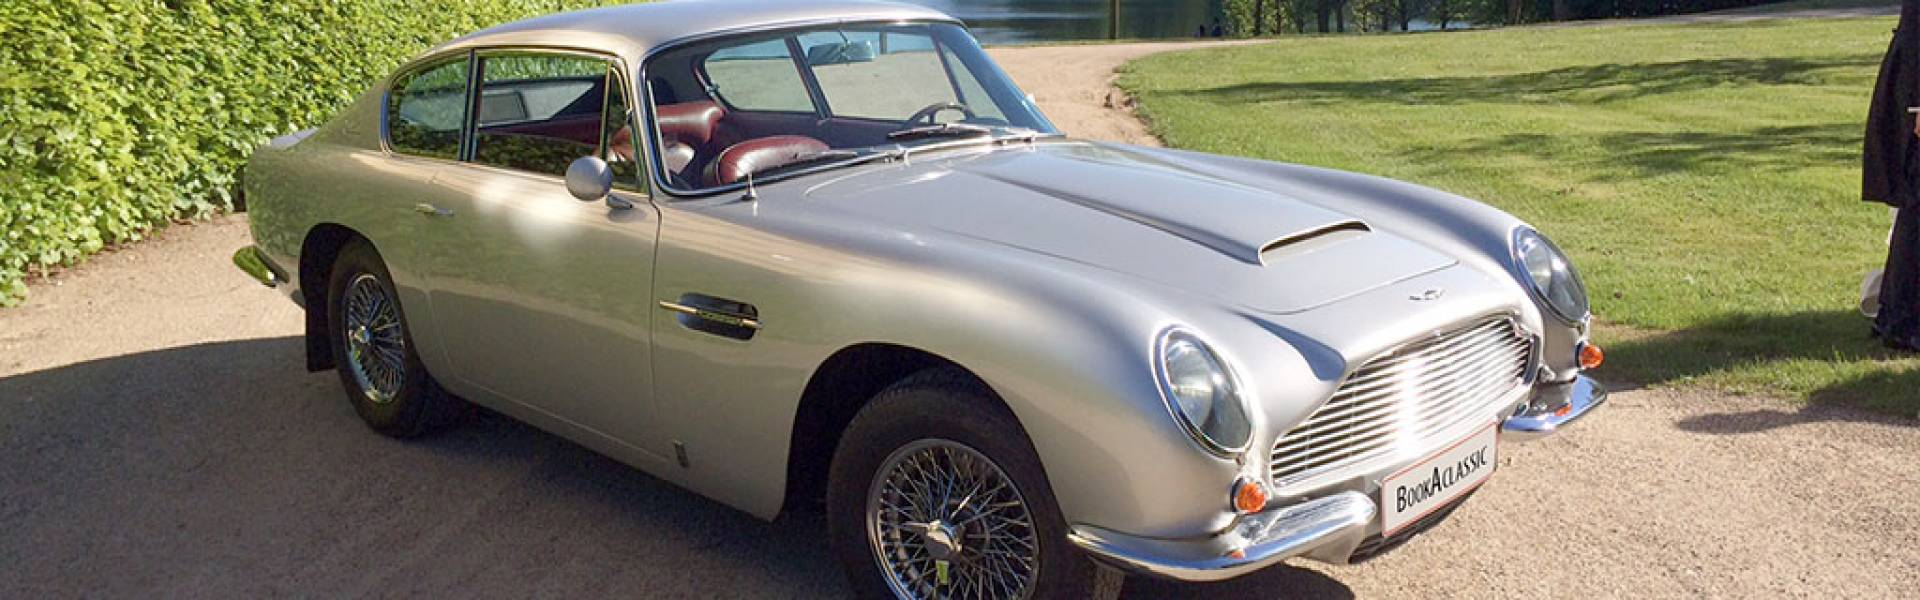 Global Platform For Classic And Vintage Car Hire Bookaclassic